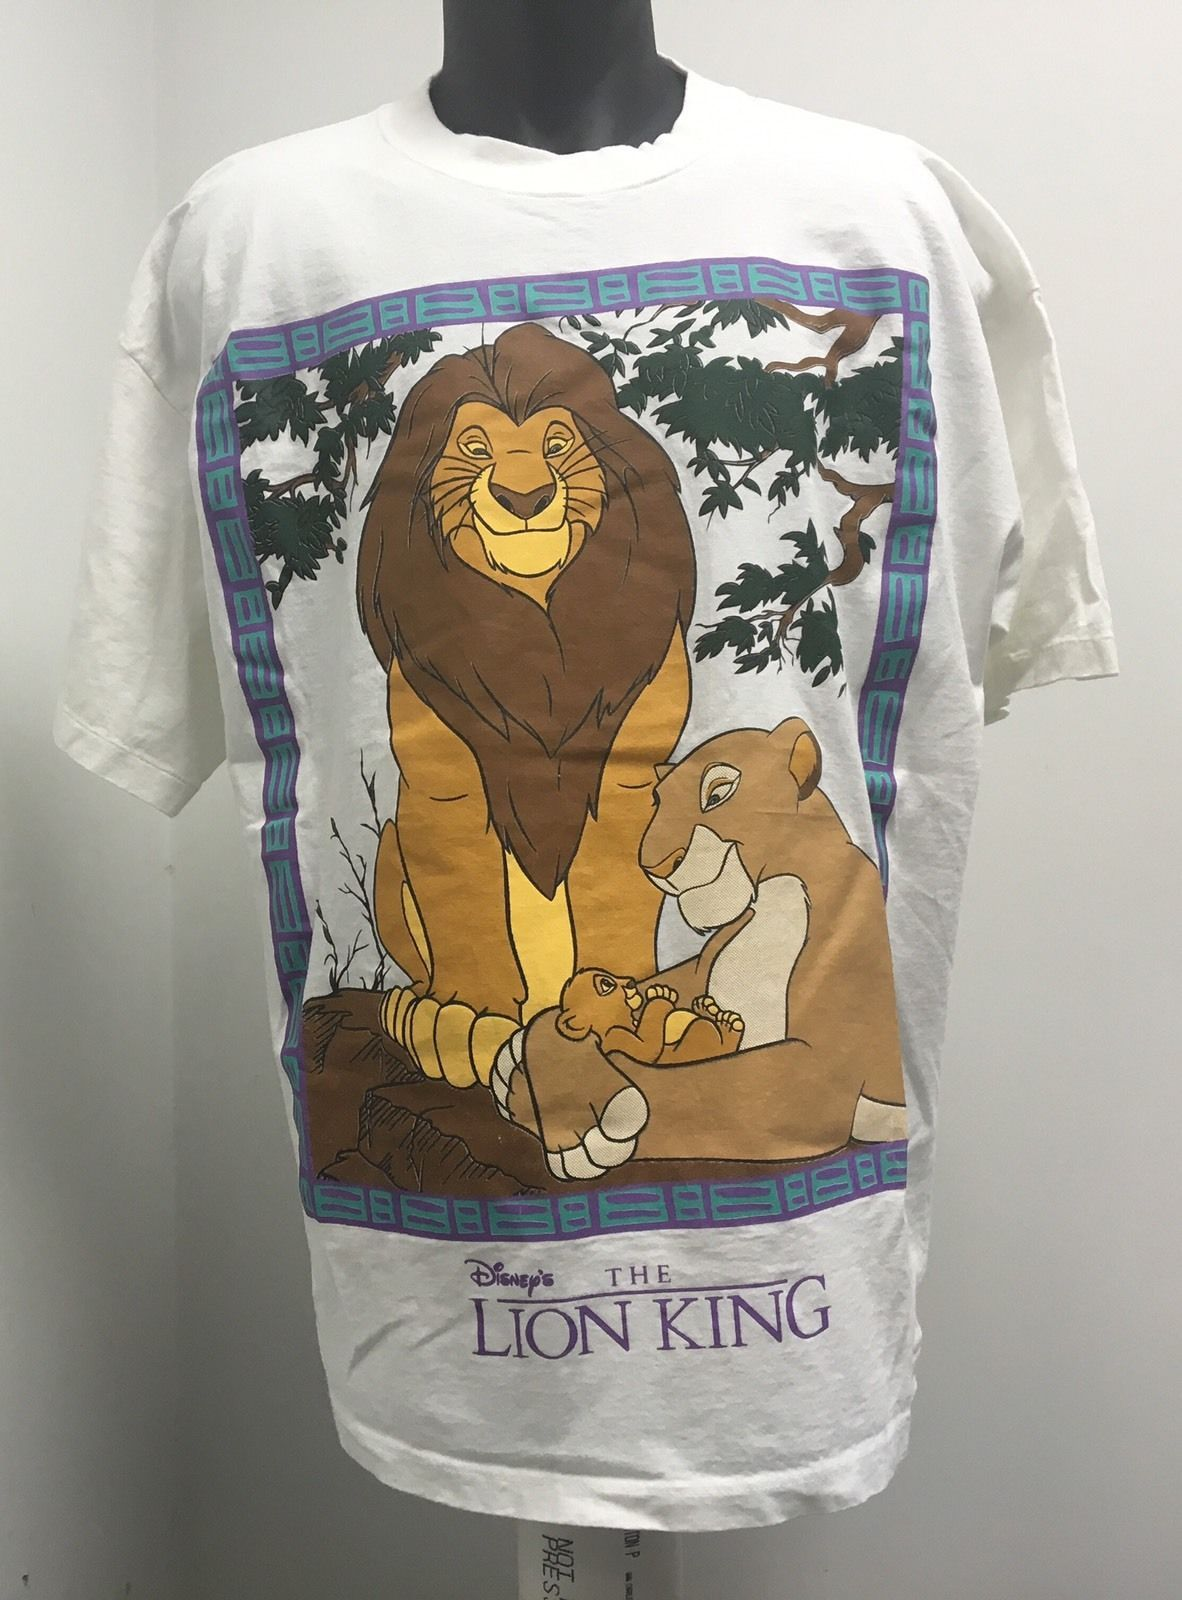 05ca53a0 VINTAGE DISNEY The LION KING SHIRT 90s SIMBA RARE WHITE Logo Scar in  Clothing, Shoes & Accessories, Men's Clothing, T-Shirts | eBay